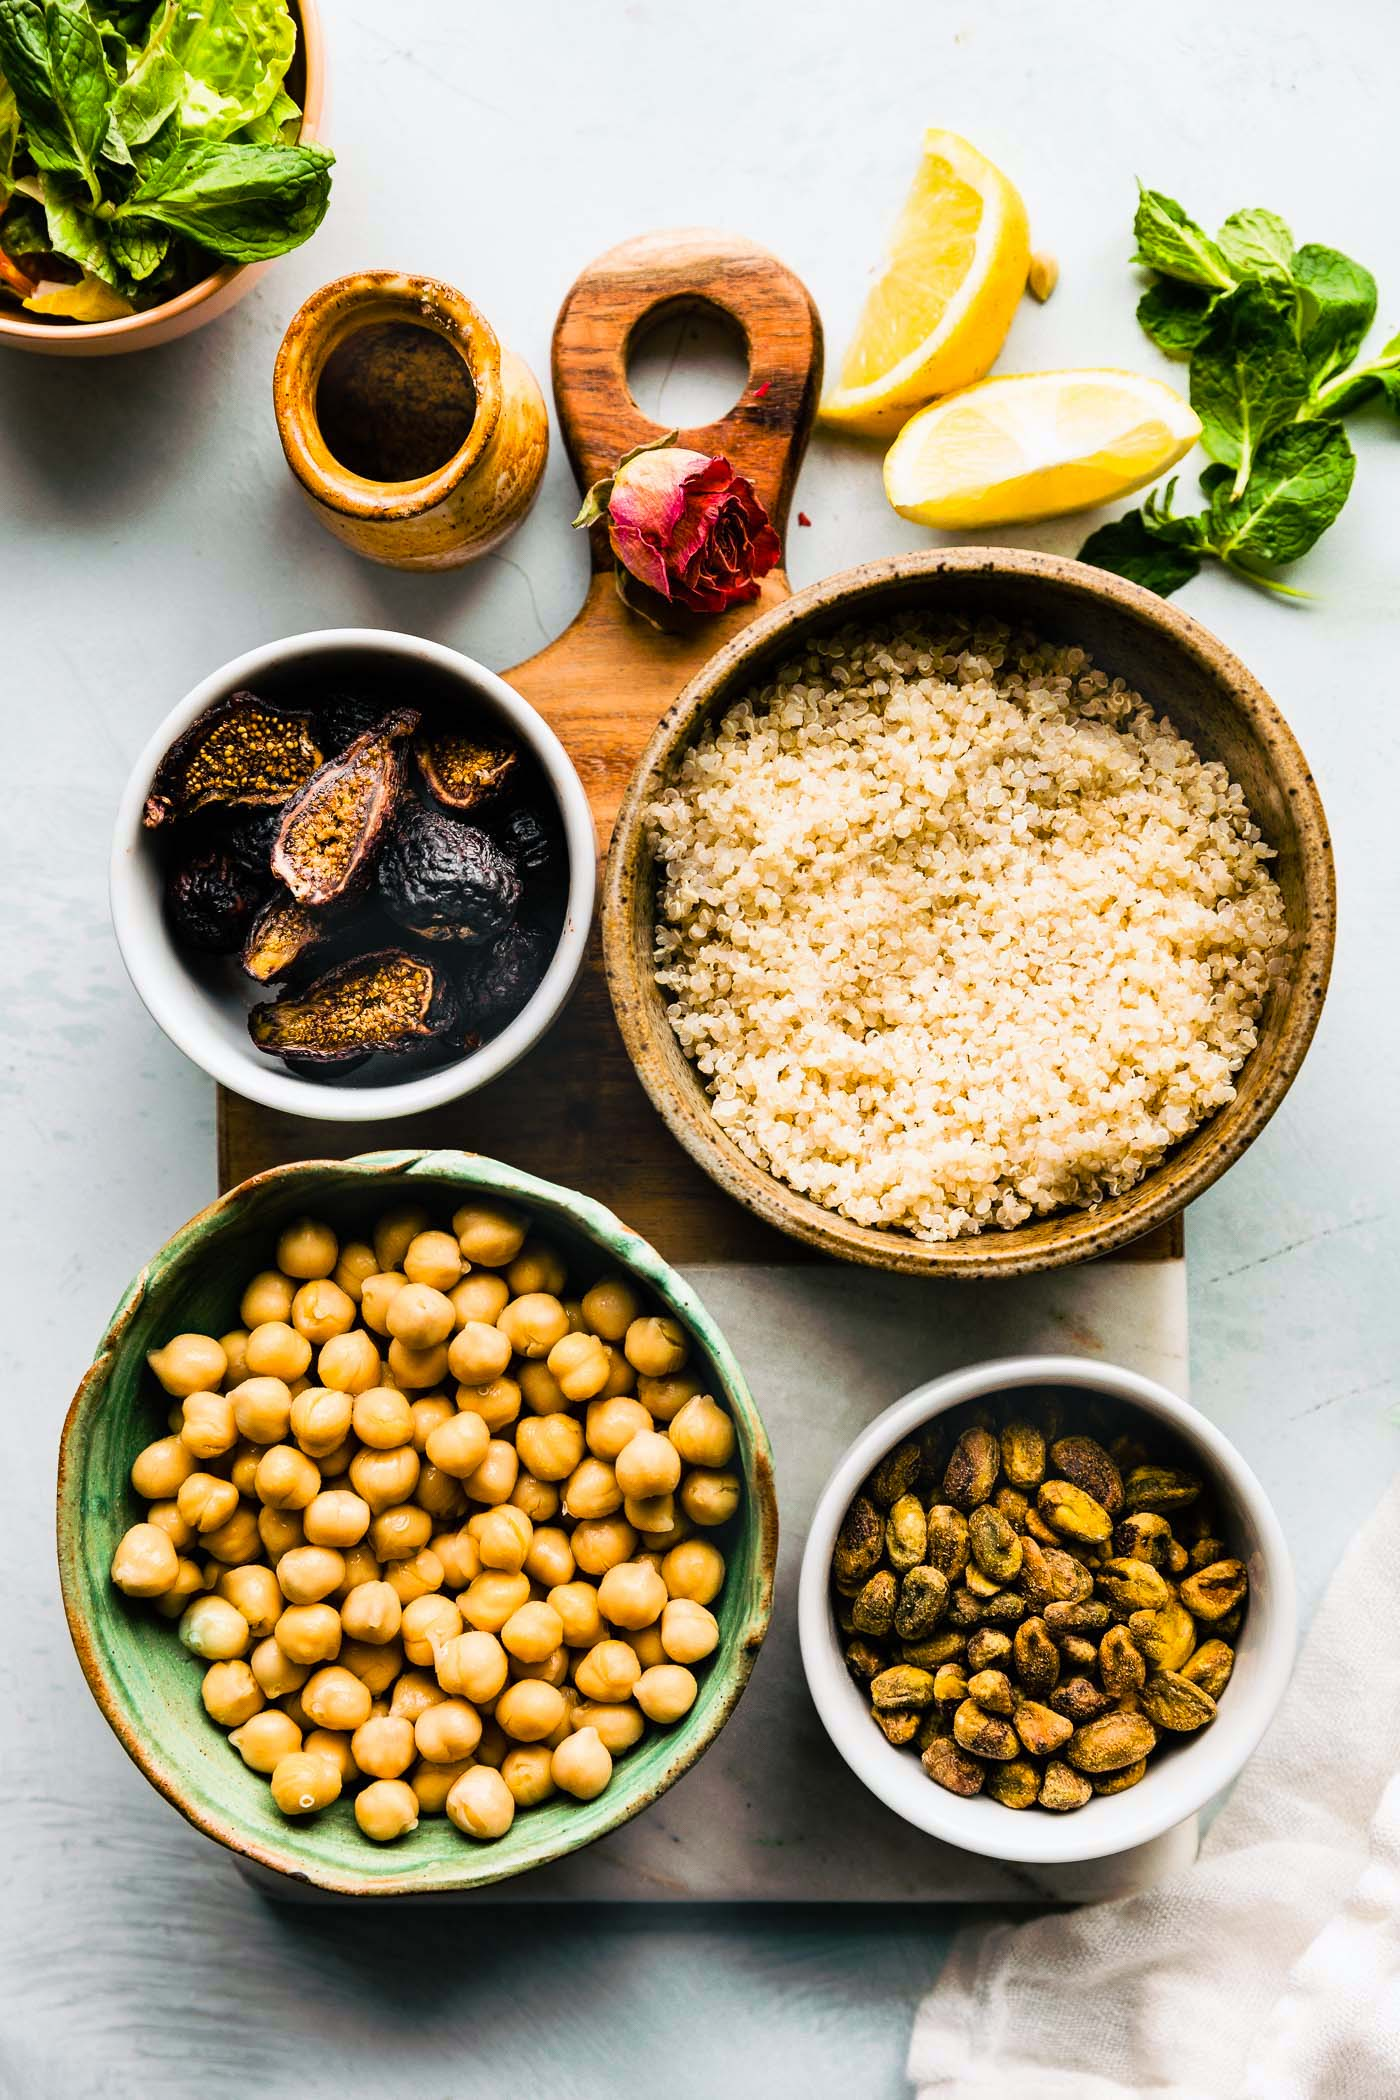 ingredients for chickpea quinoa salad